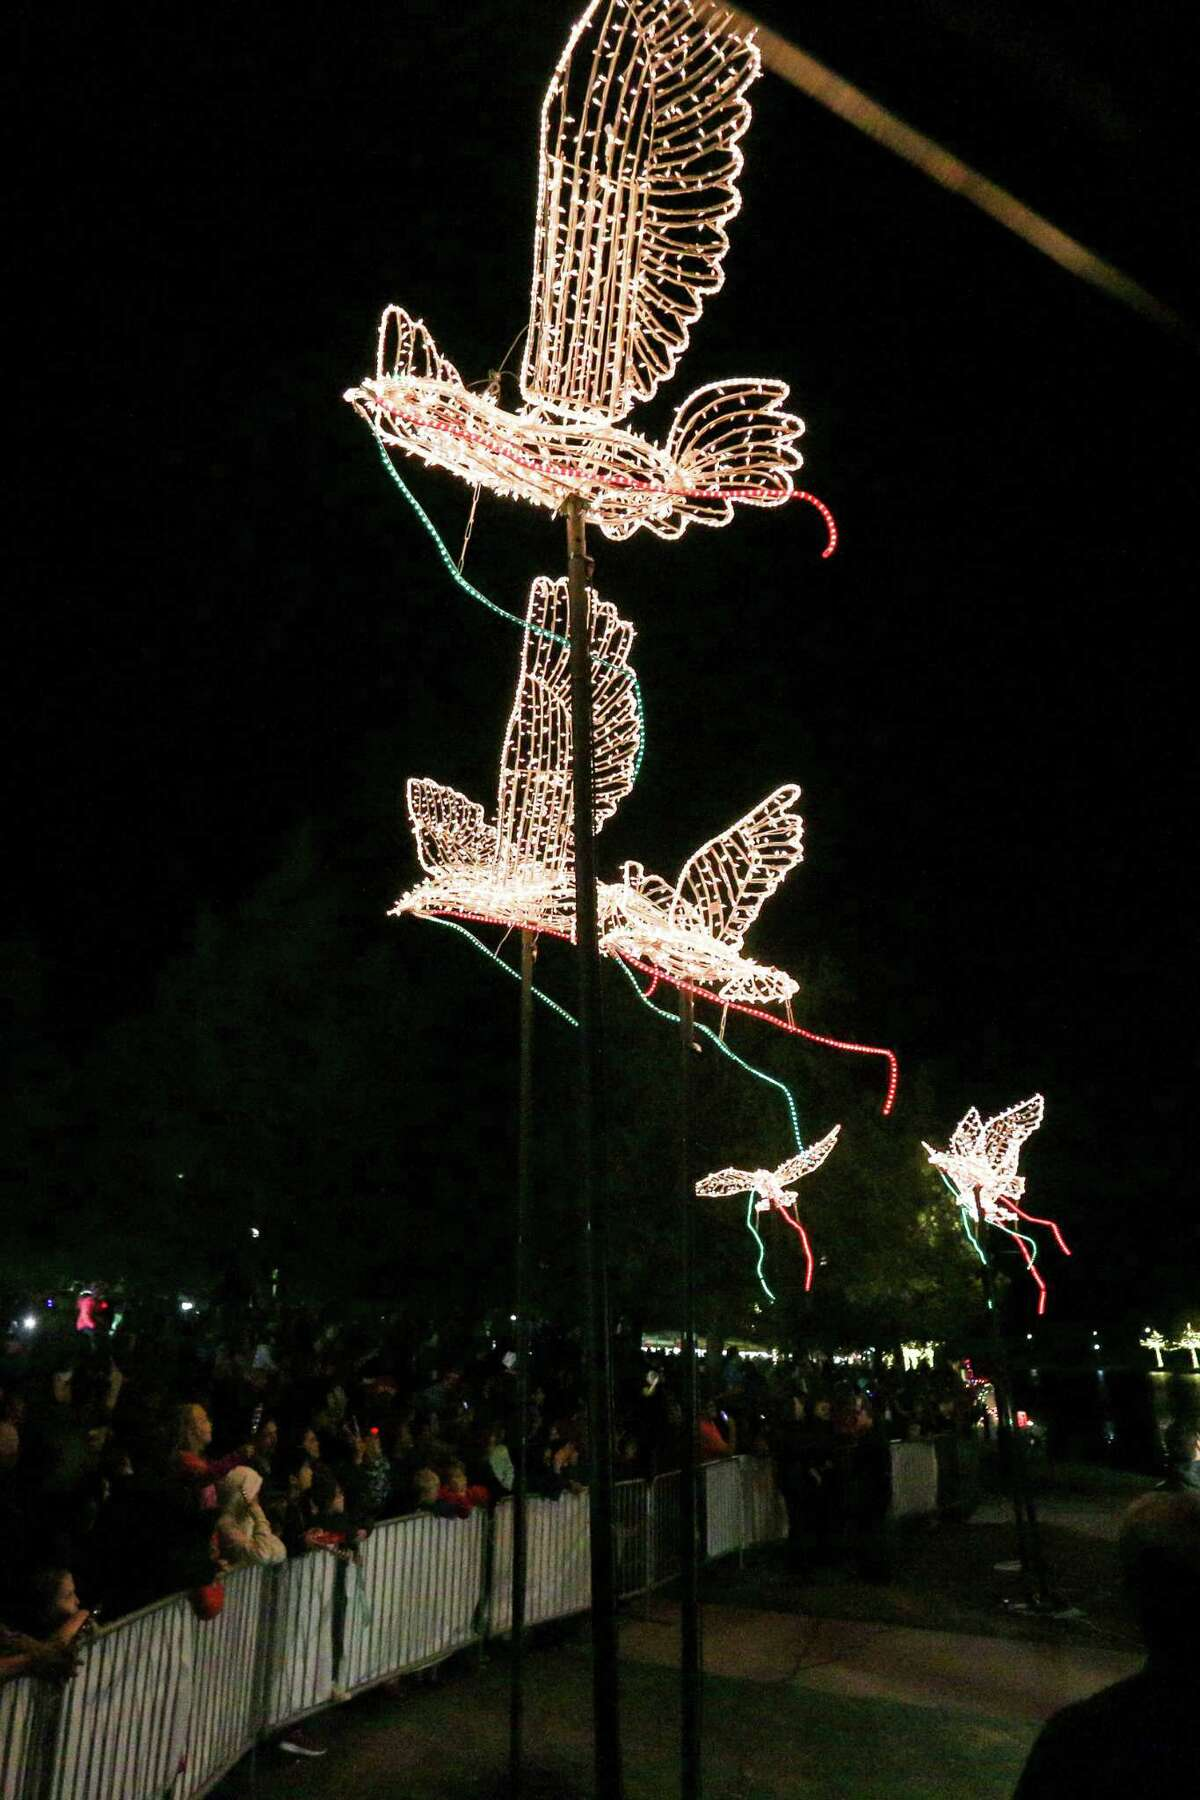 Several dove sculptures burst to light during the Lighting of the Doves event on Saturday, Nov. 18, 2017, at Town Green Park.